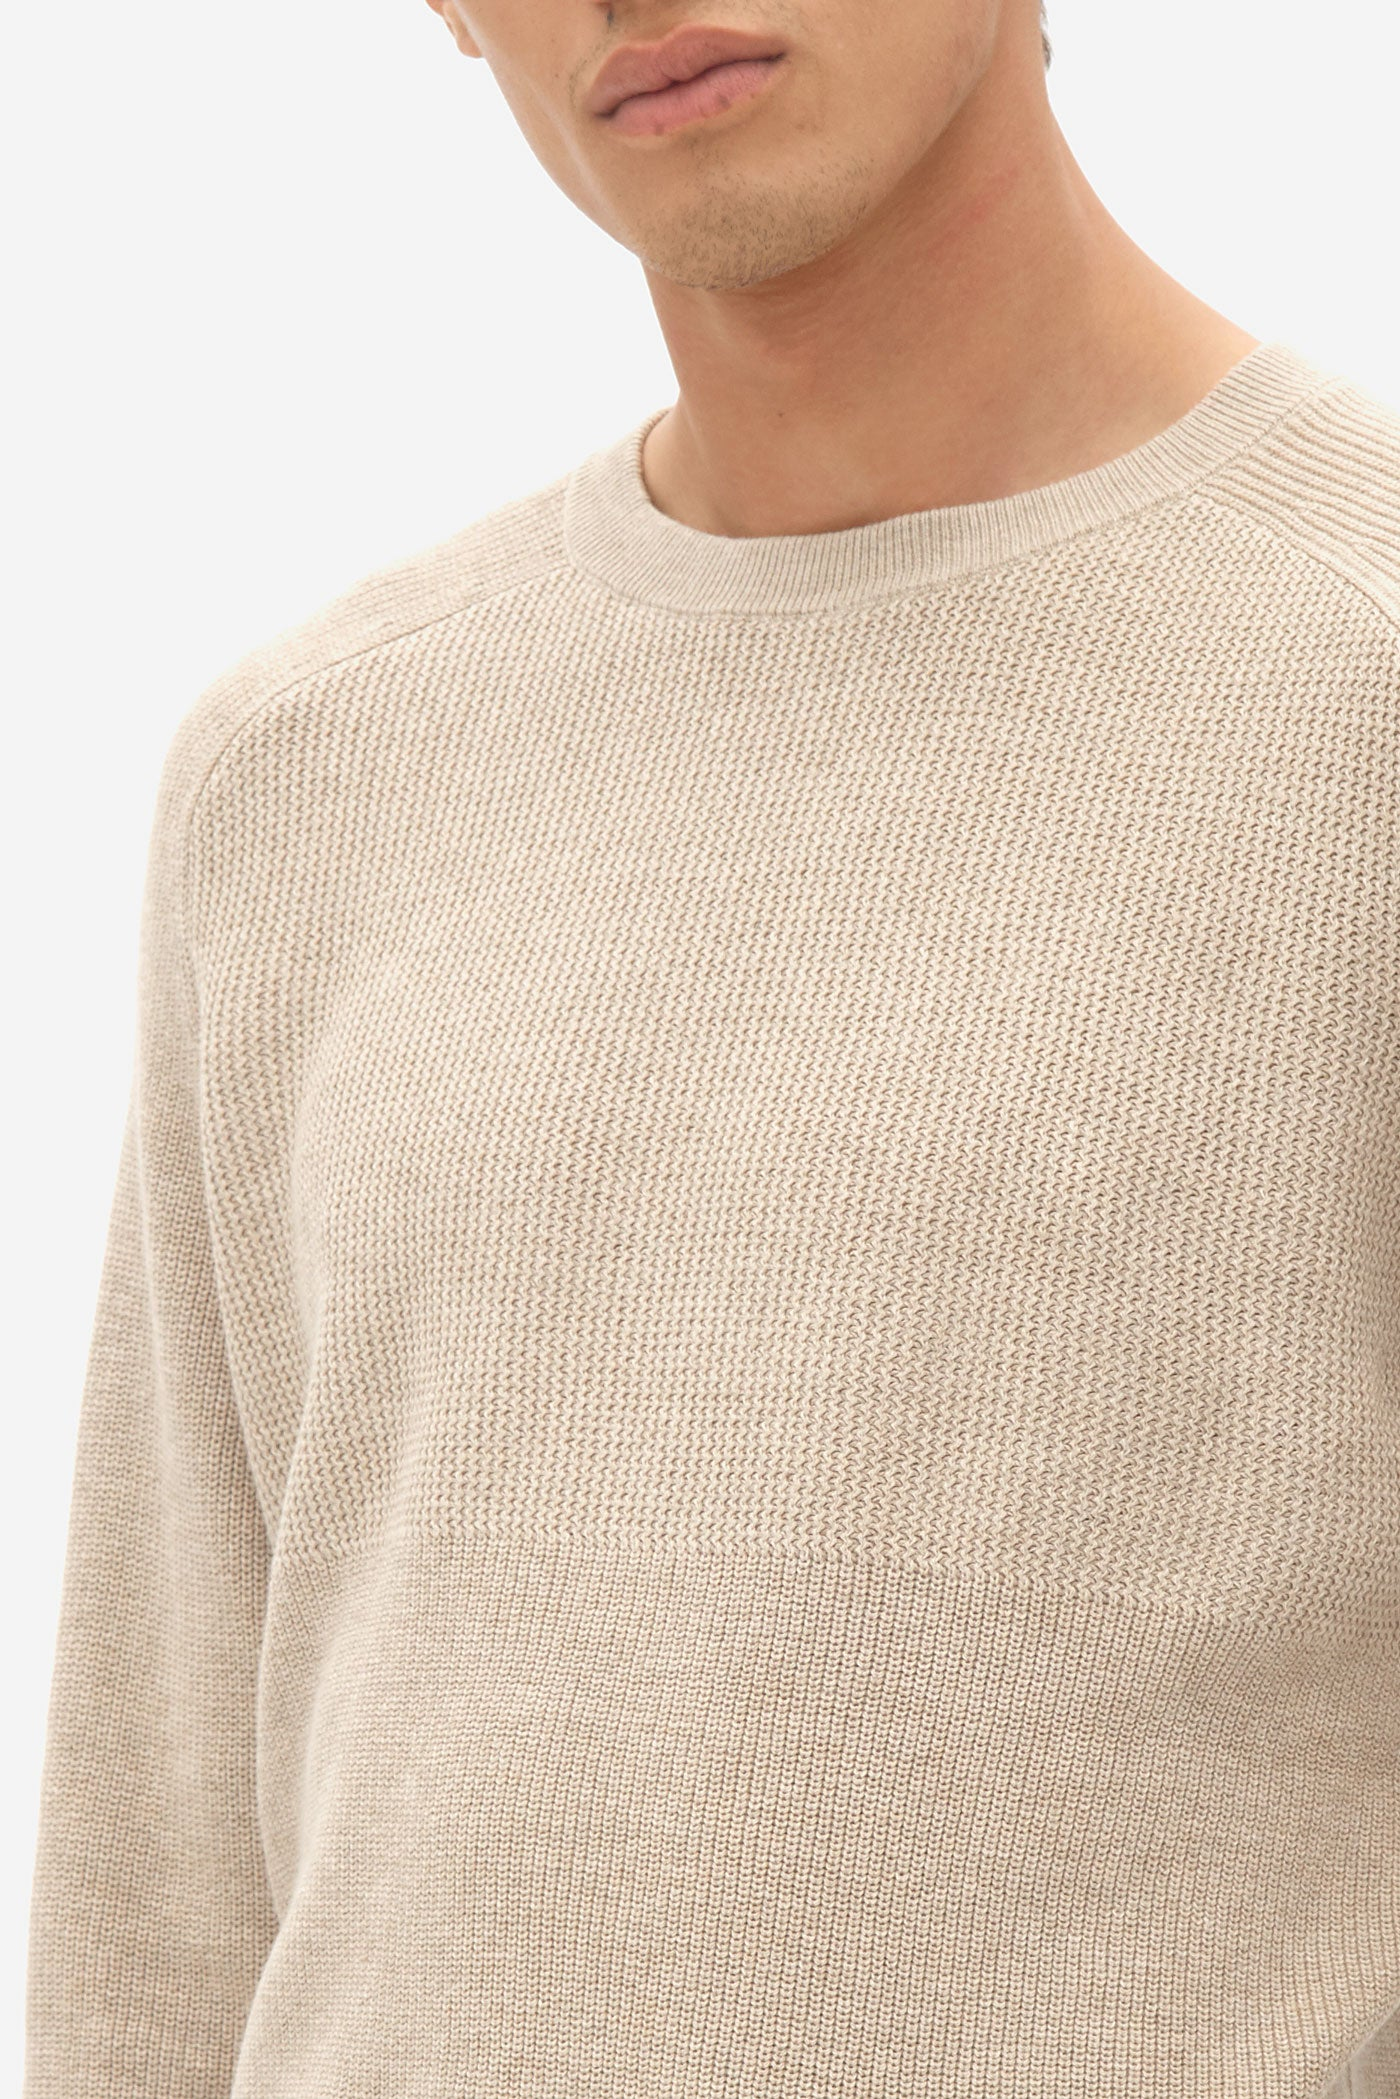 NOS022 multi structure sweater brown rice